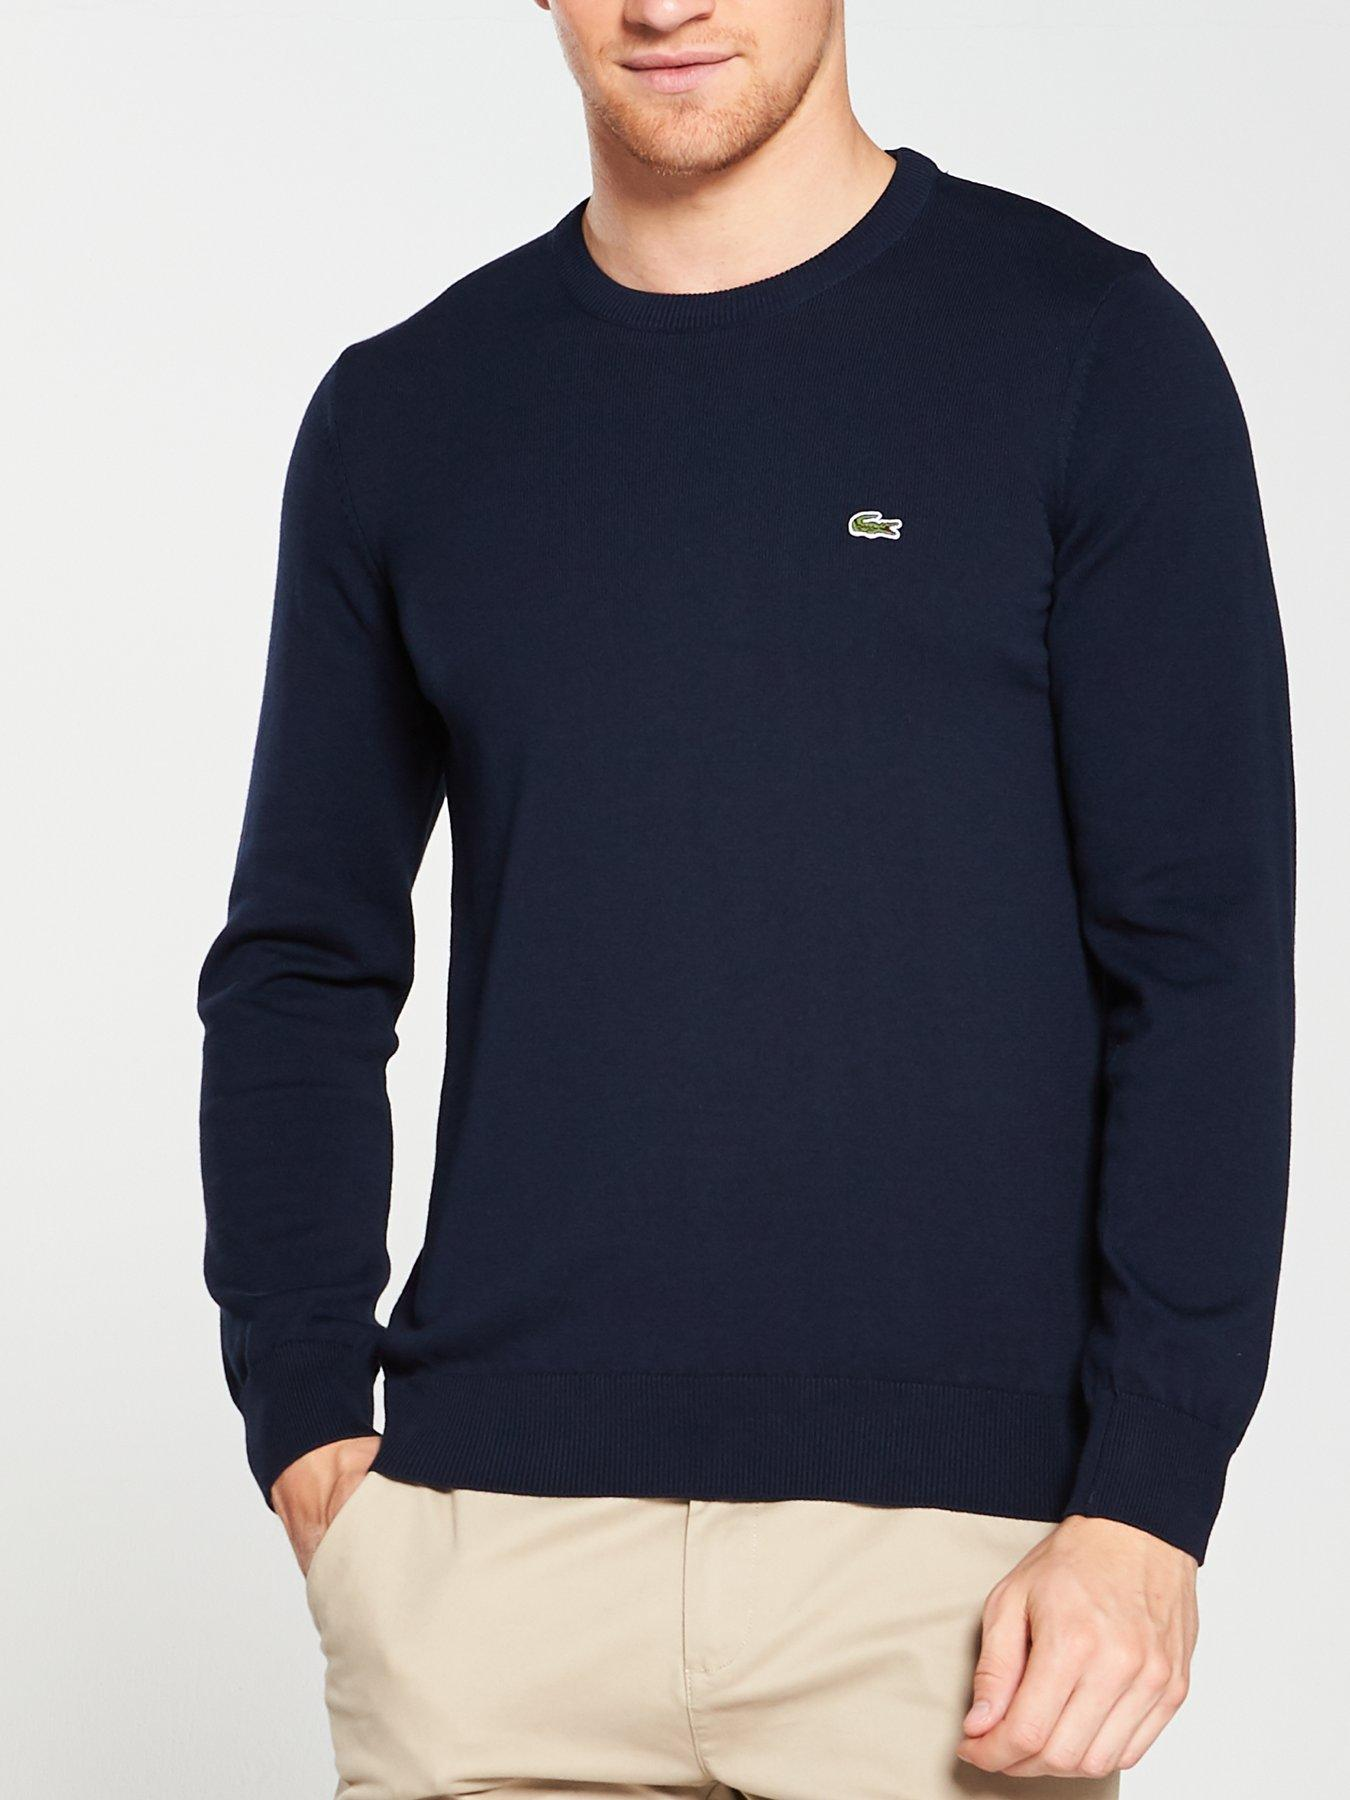 Fancy Stitch Mens Double-Layers-Crewneck Soft Wool Sweater Top